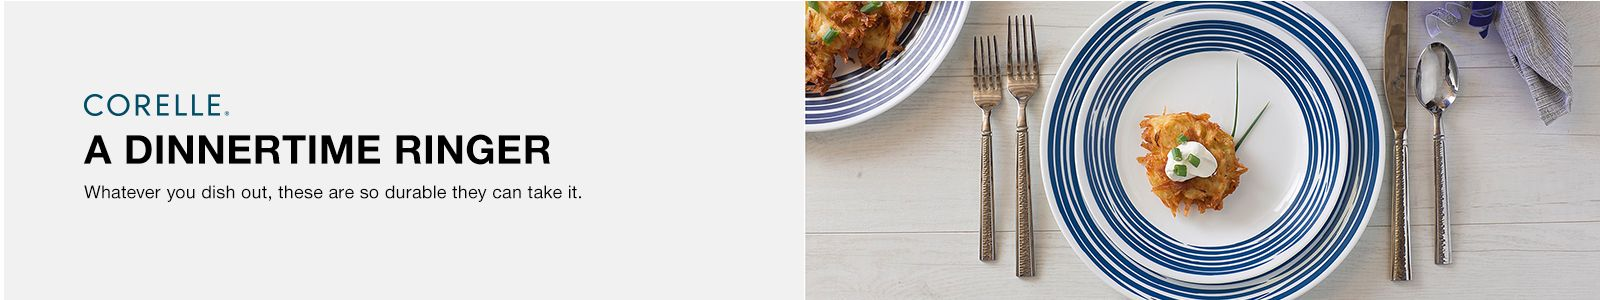 Corelle, A Dinnertime Ringer, Whatever you dish out, these are so durable they can take it